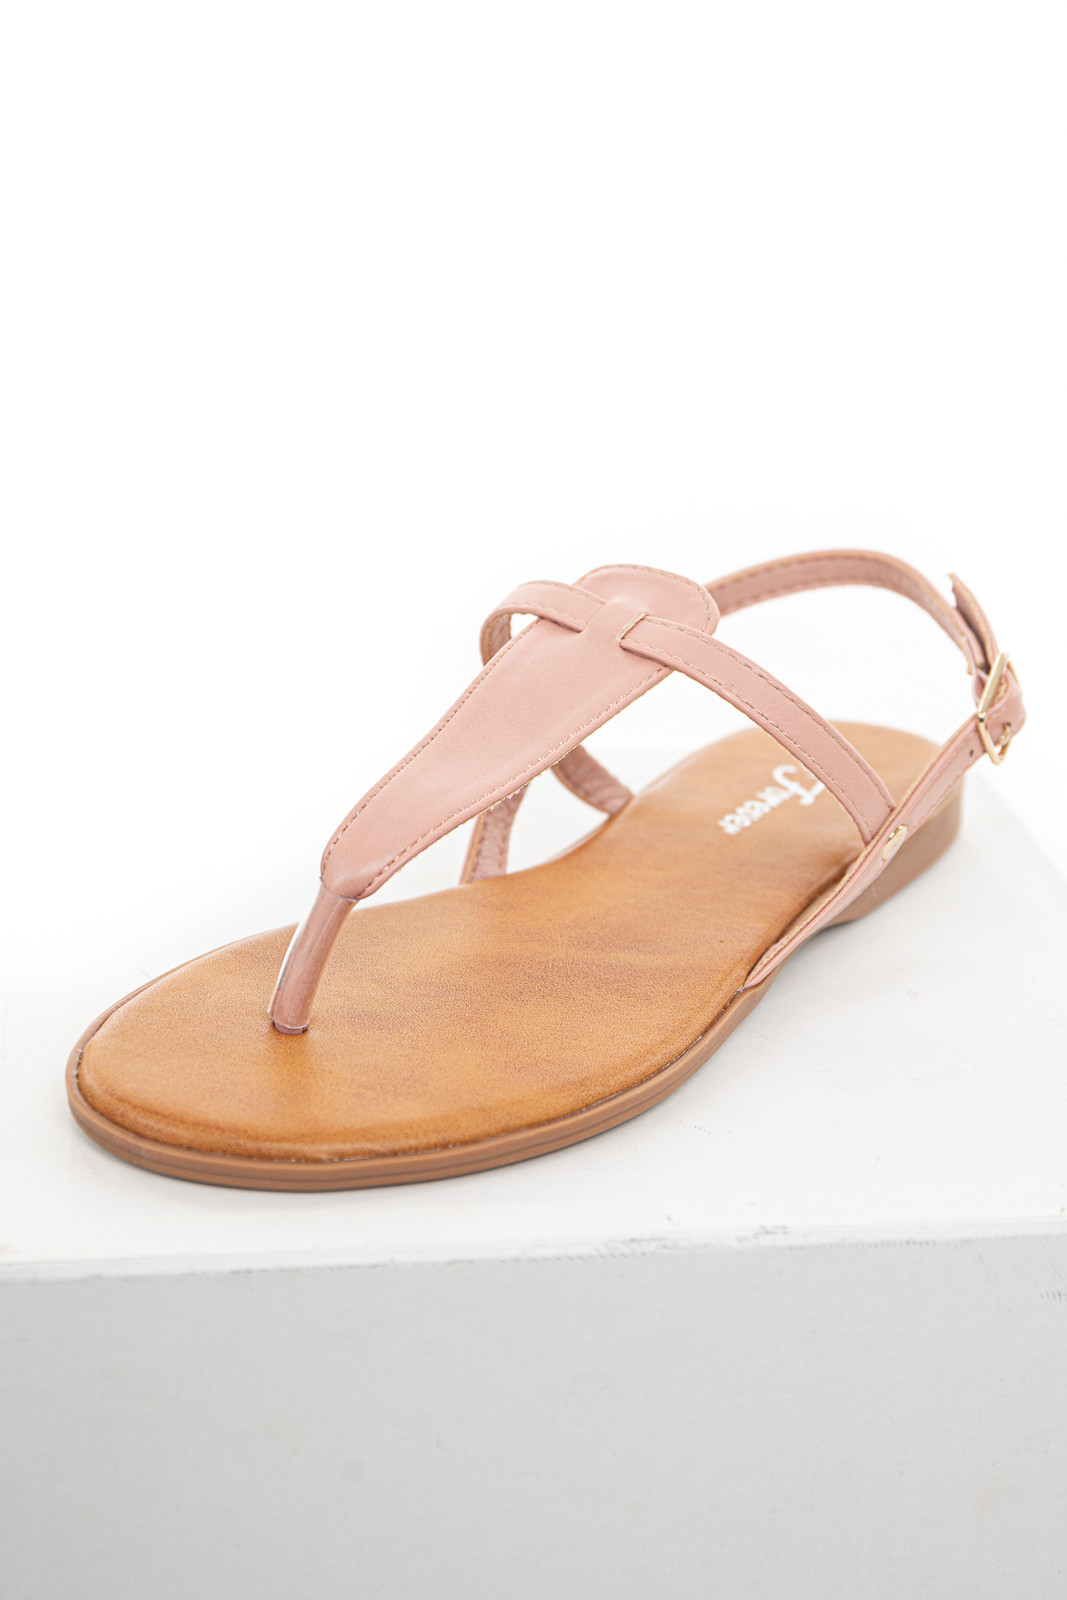 Dusty Blush Flat Strappy Thong Sandals with Buckle Closure